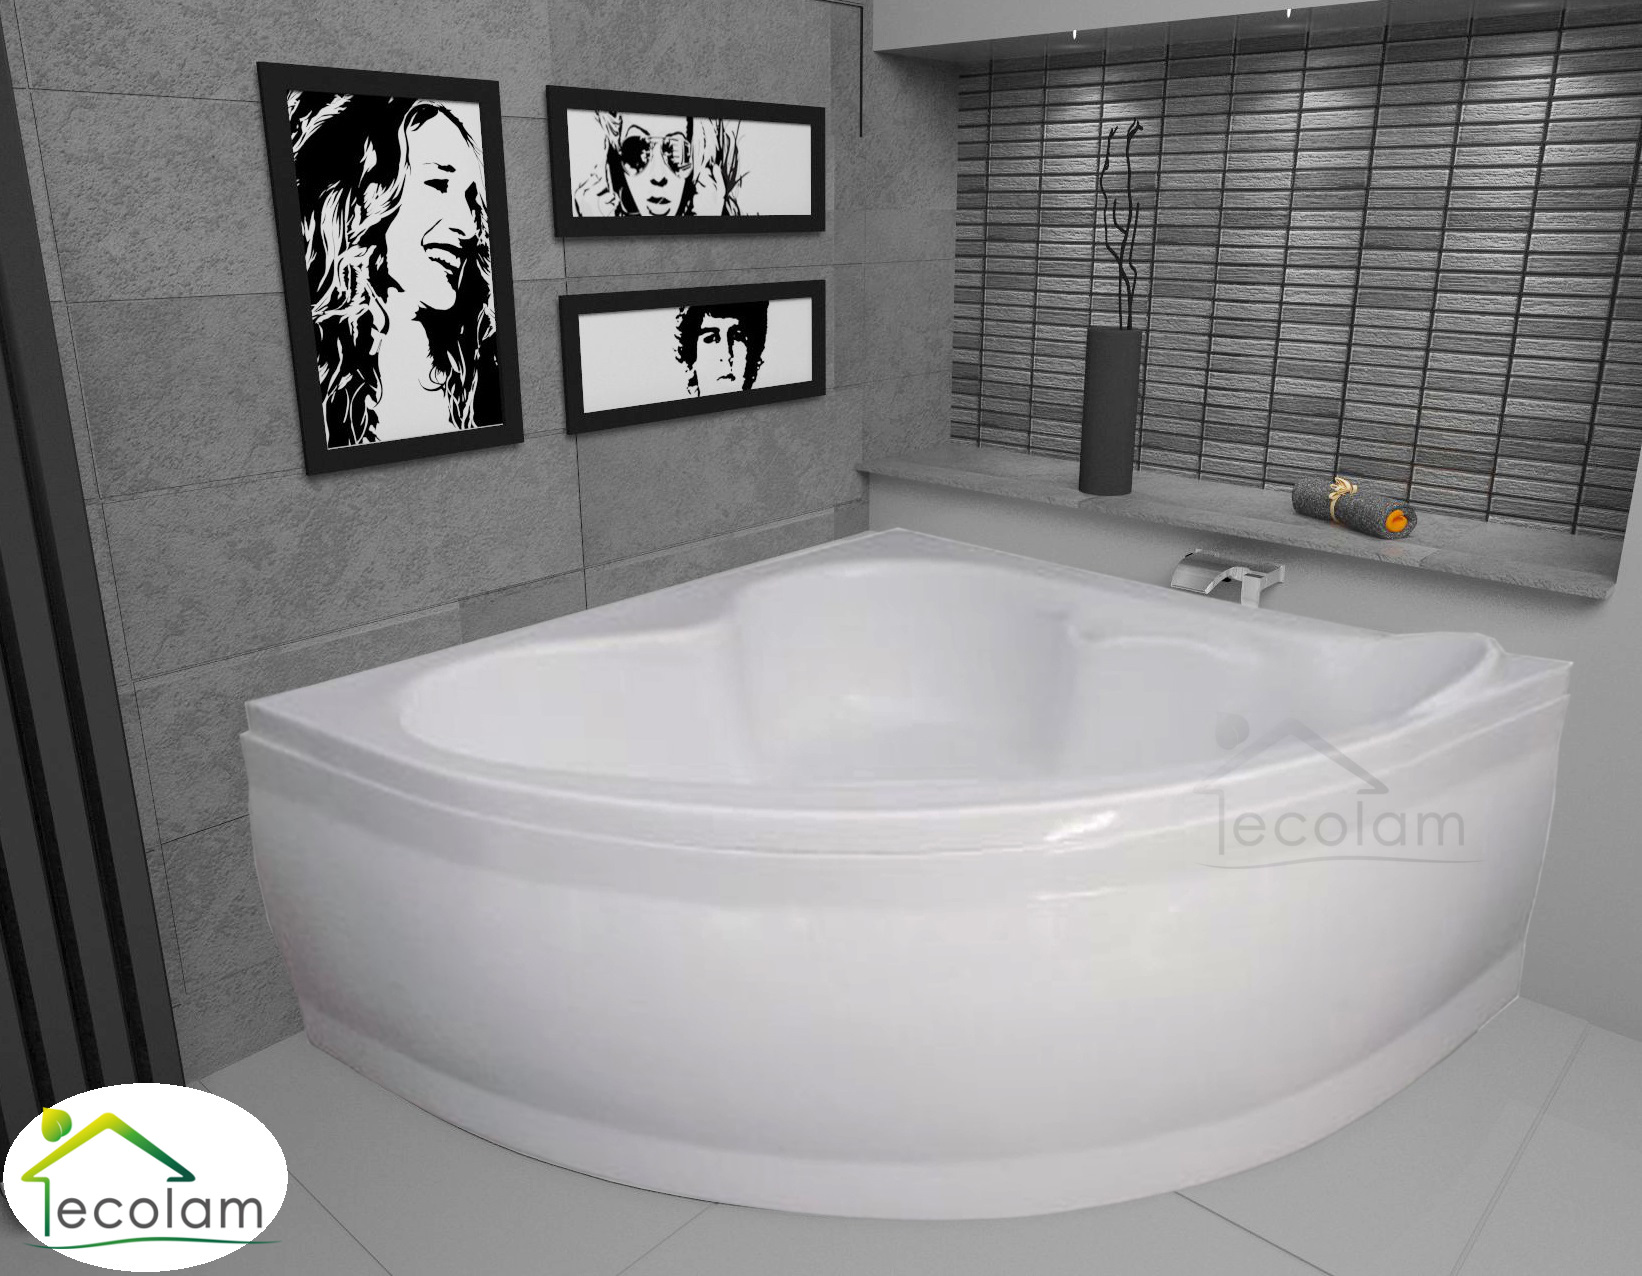 badewanne wanne eckwanne eckbadewanne 120x120 130x130 cm sch rze ablauf ebay. Black Bedroom Furniture Sets. Home Design Ideas